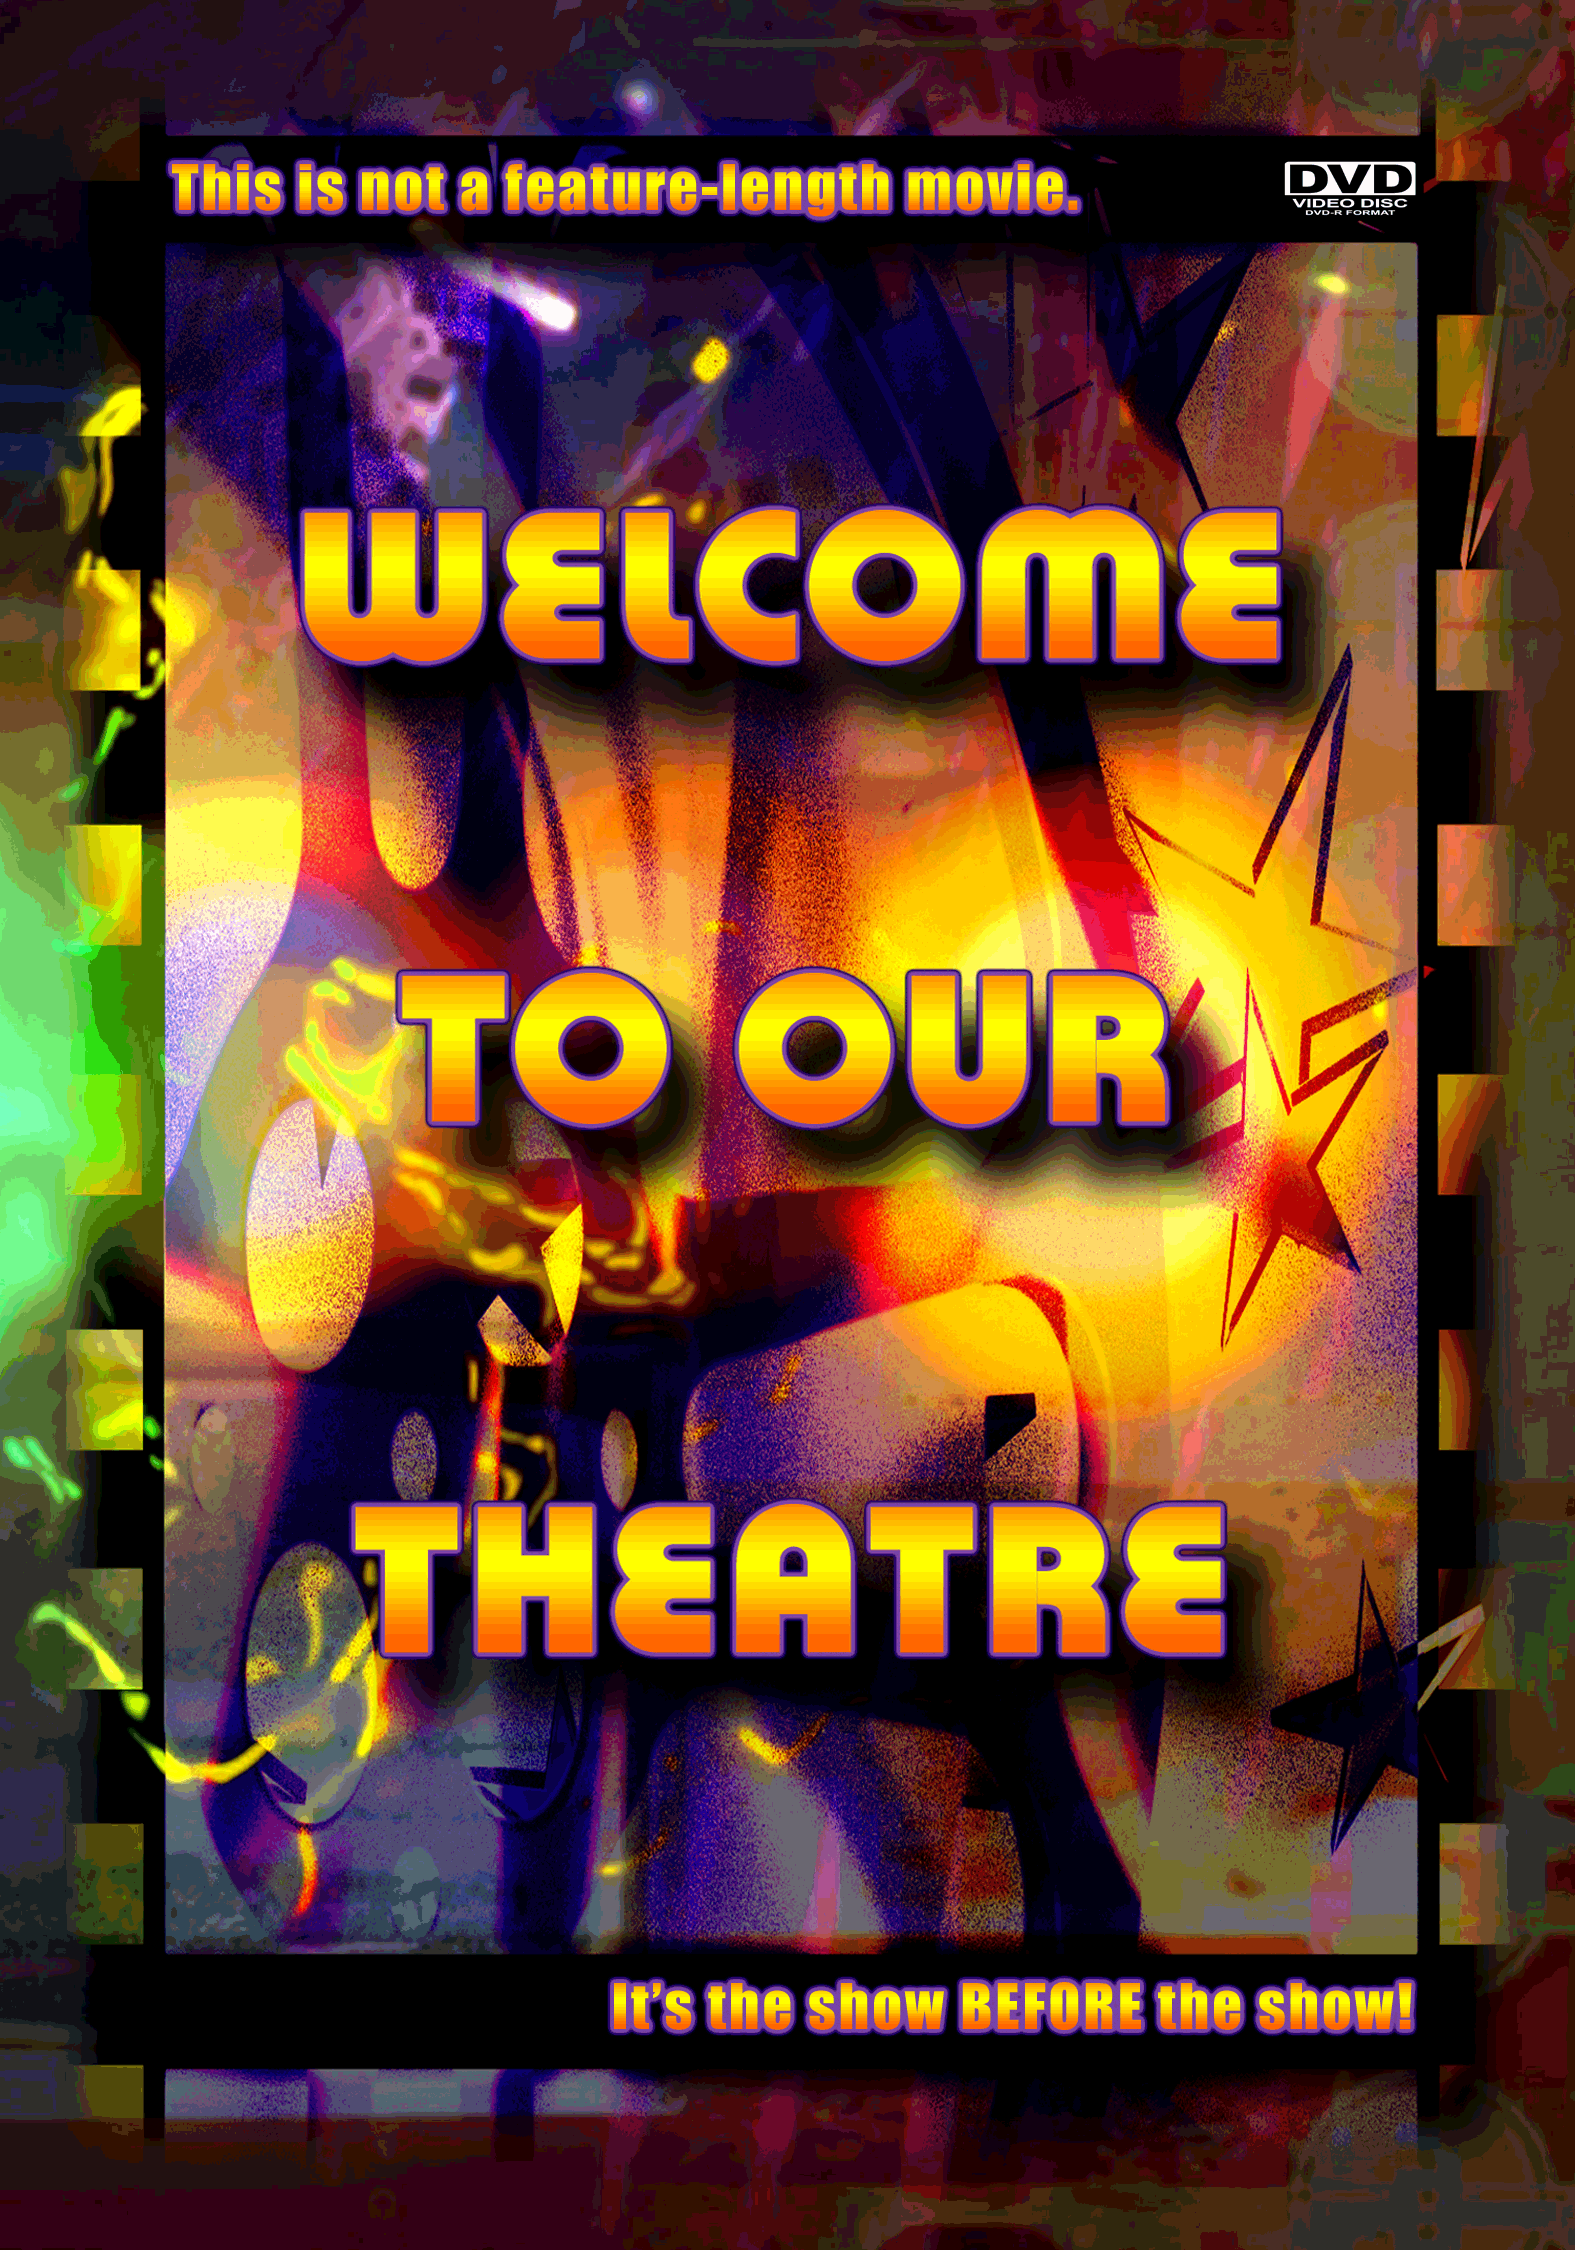 Welcome To Our Theater DVD Box Cover